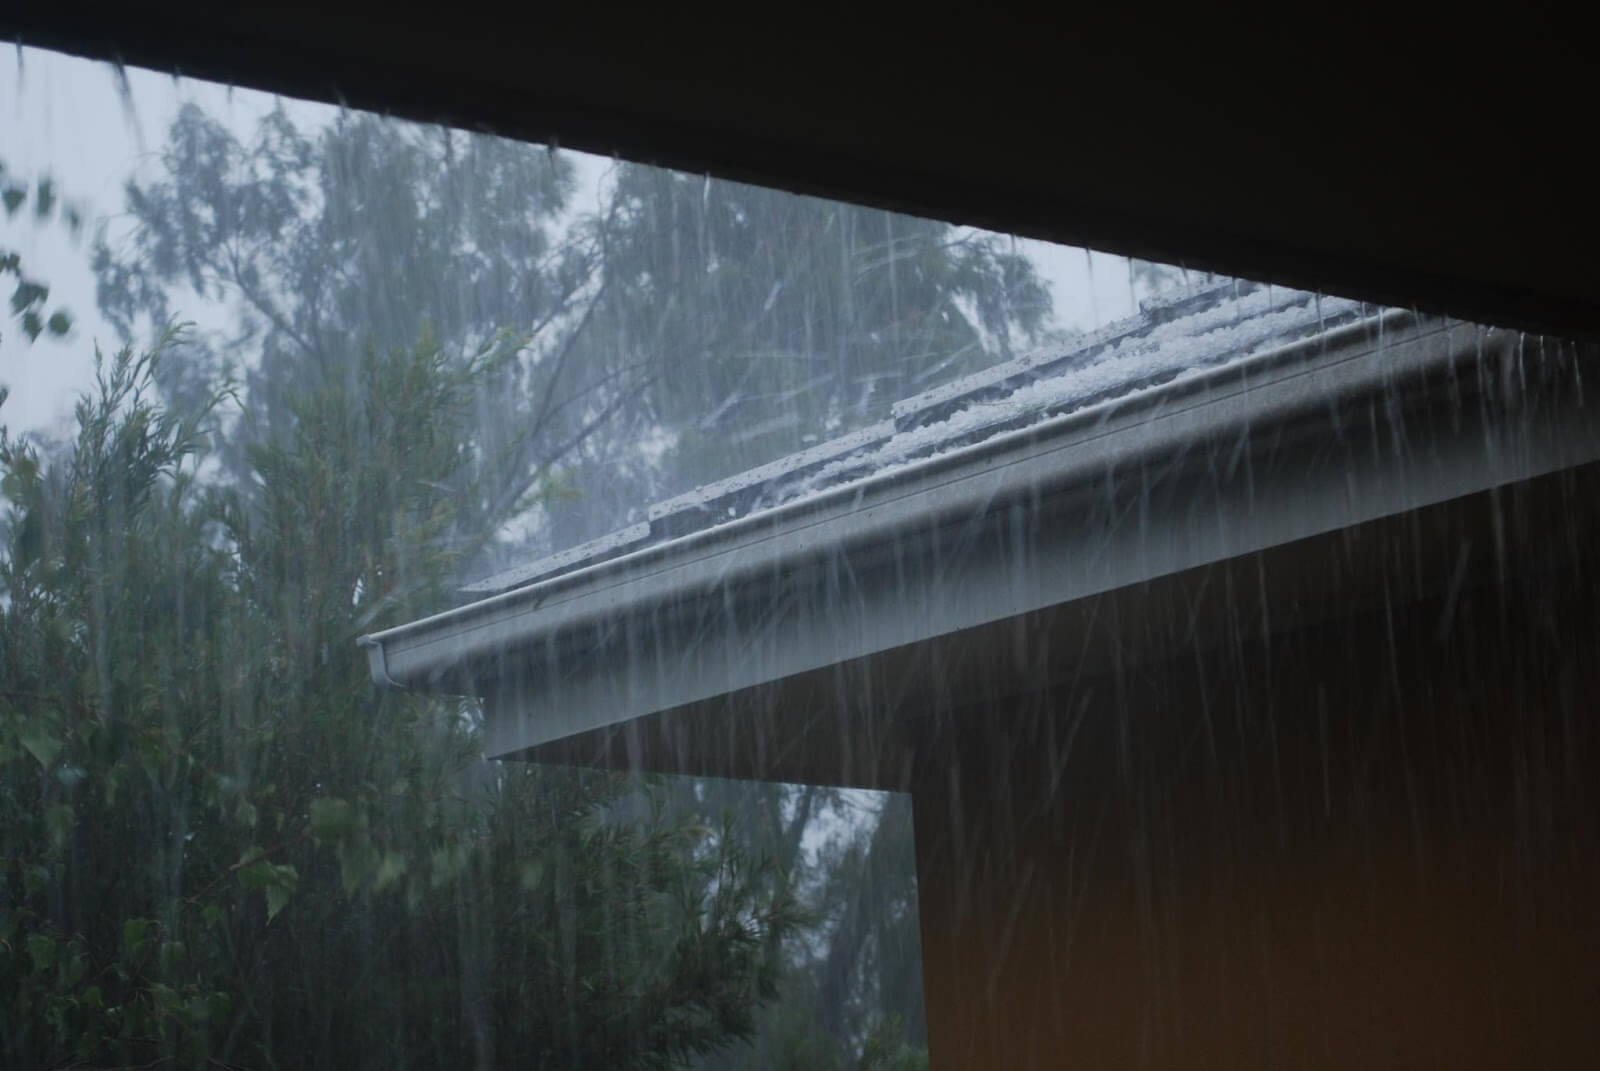 Best Hail-Resistant Roof Material